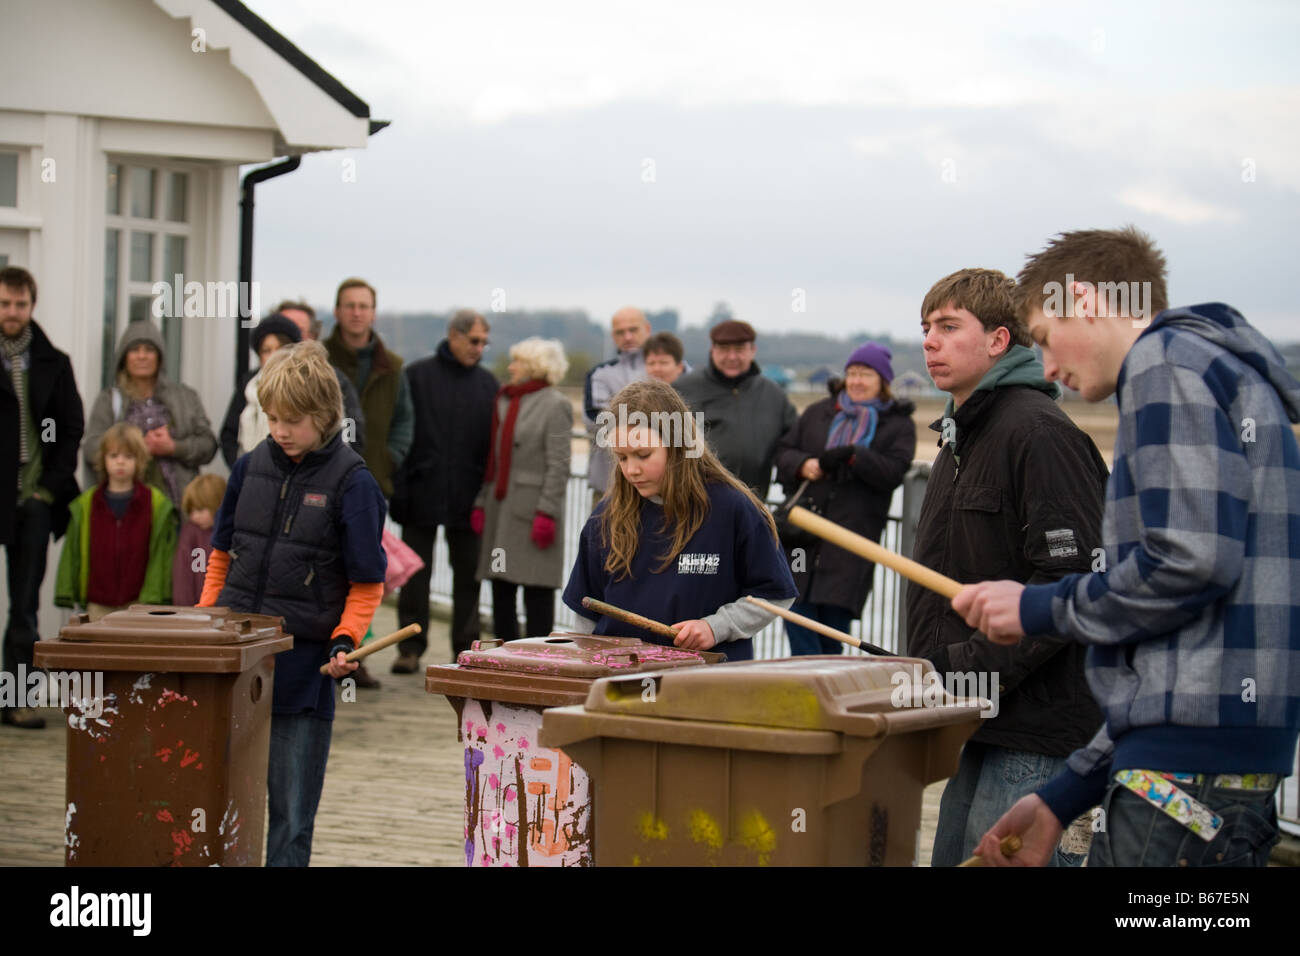 A youth band drumming on dustbins on the Pier, Southwold, Suffolk, England - Stock Image